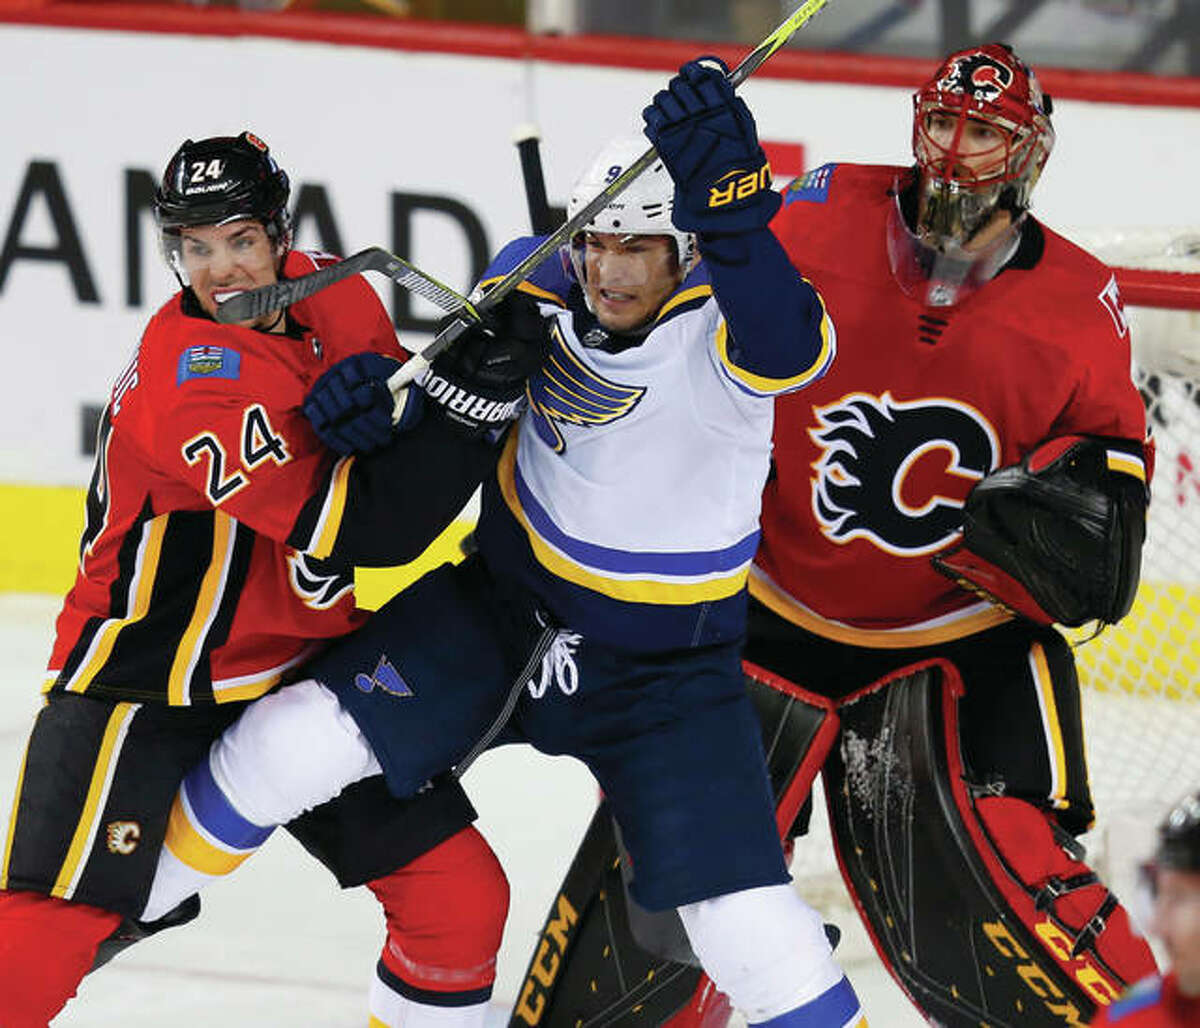 The Flames' Travis Hamonic (left) tries to move the Blues' Scottie Upshall from blocking Flames goalie Mike Smith during the first period Wednesday night in Calgary, Alberta.